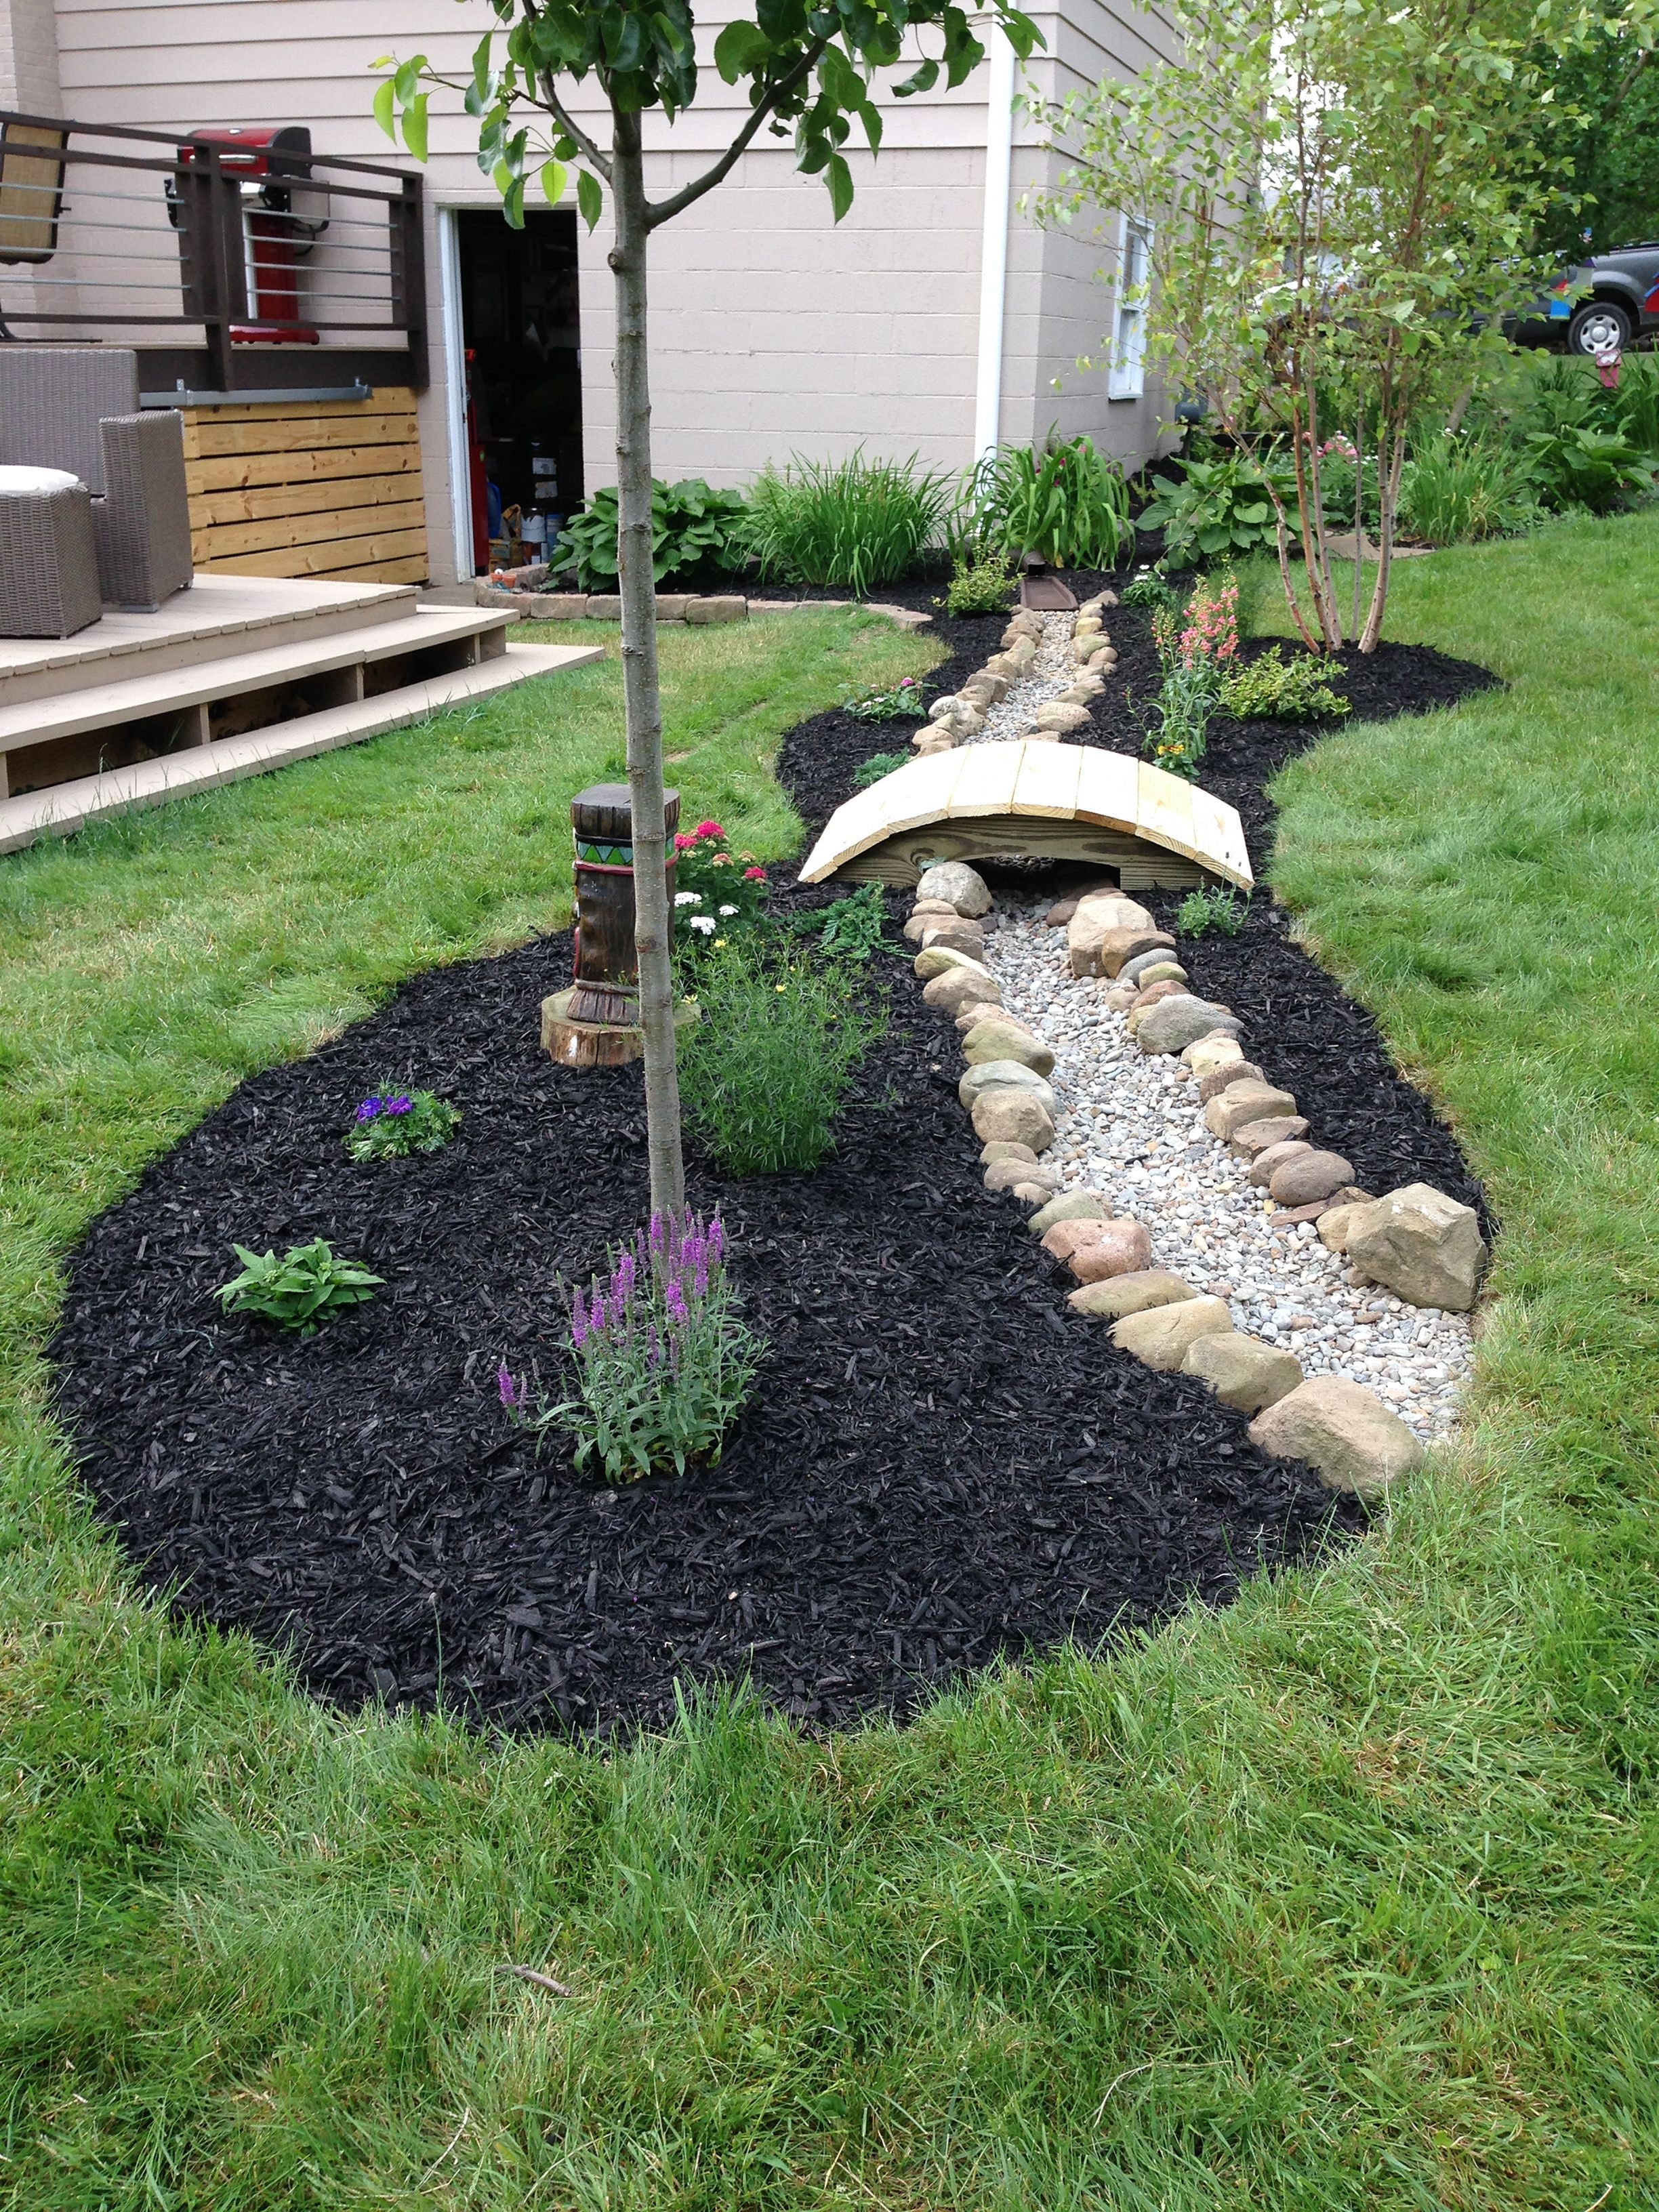 Inspiring 110 Awesome Dry River Bed Landscaping Design Ideas You